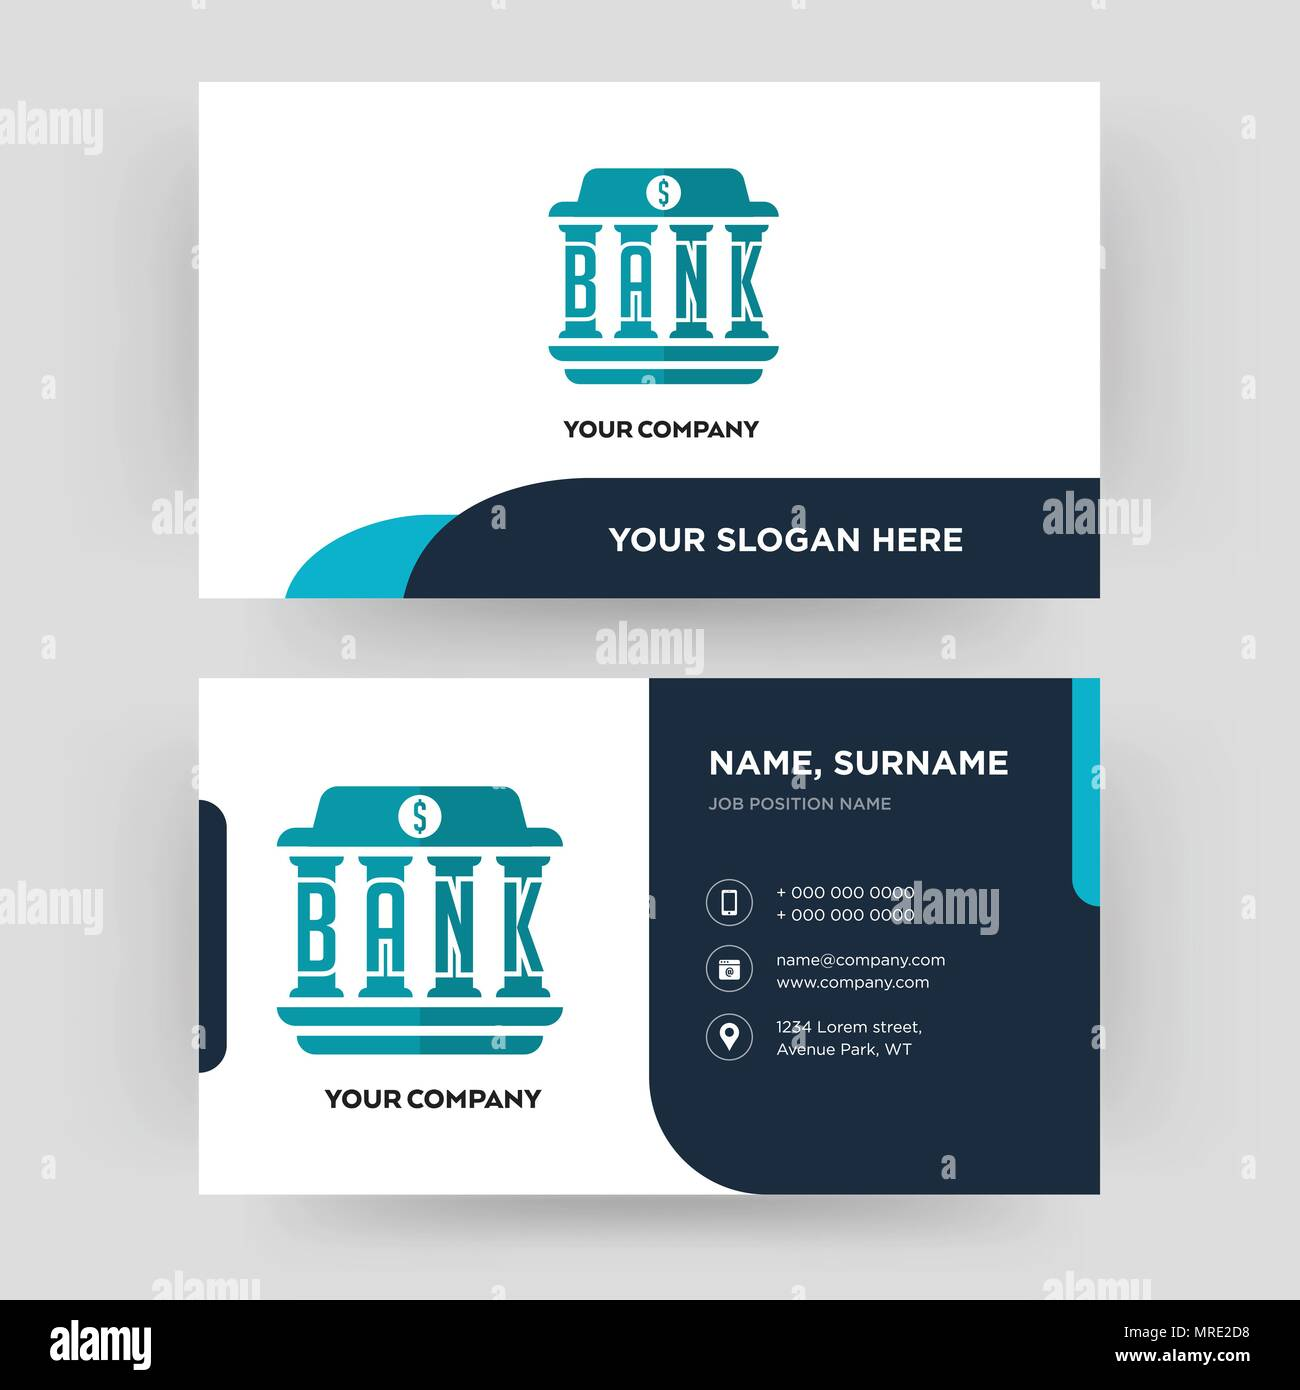 Bank Business Card Design Template Visiting For Your